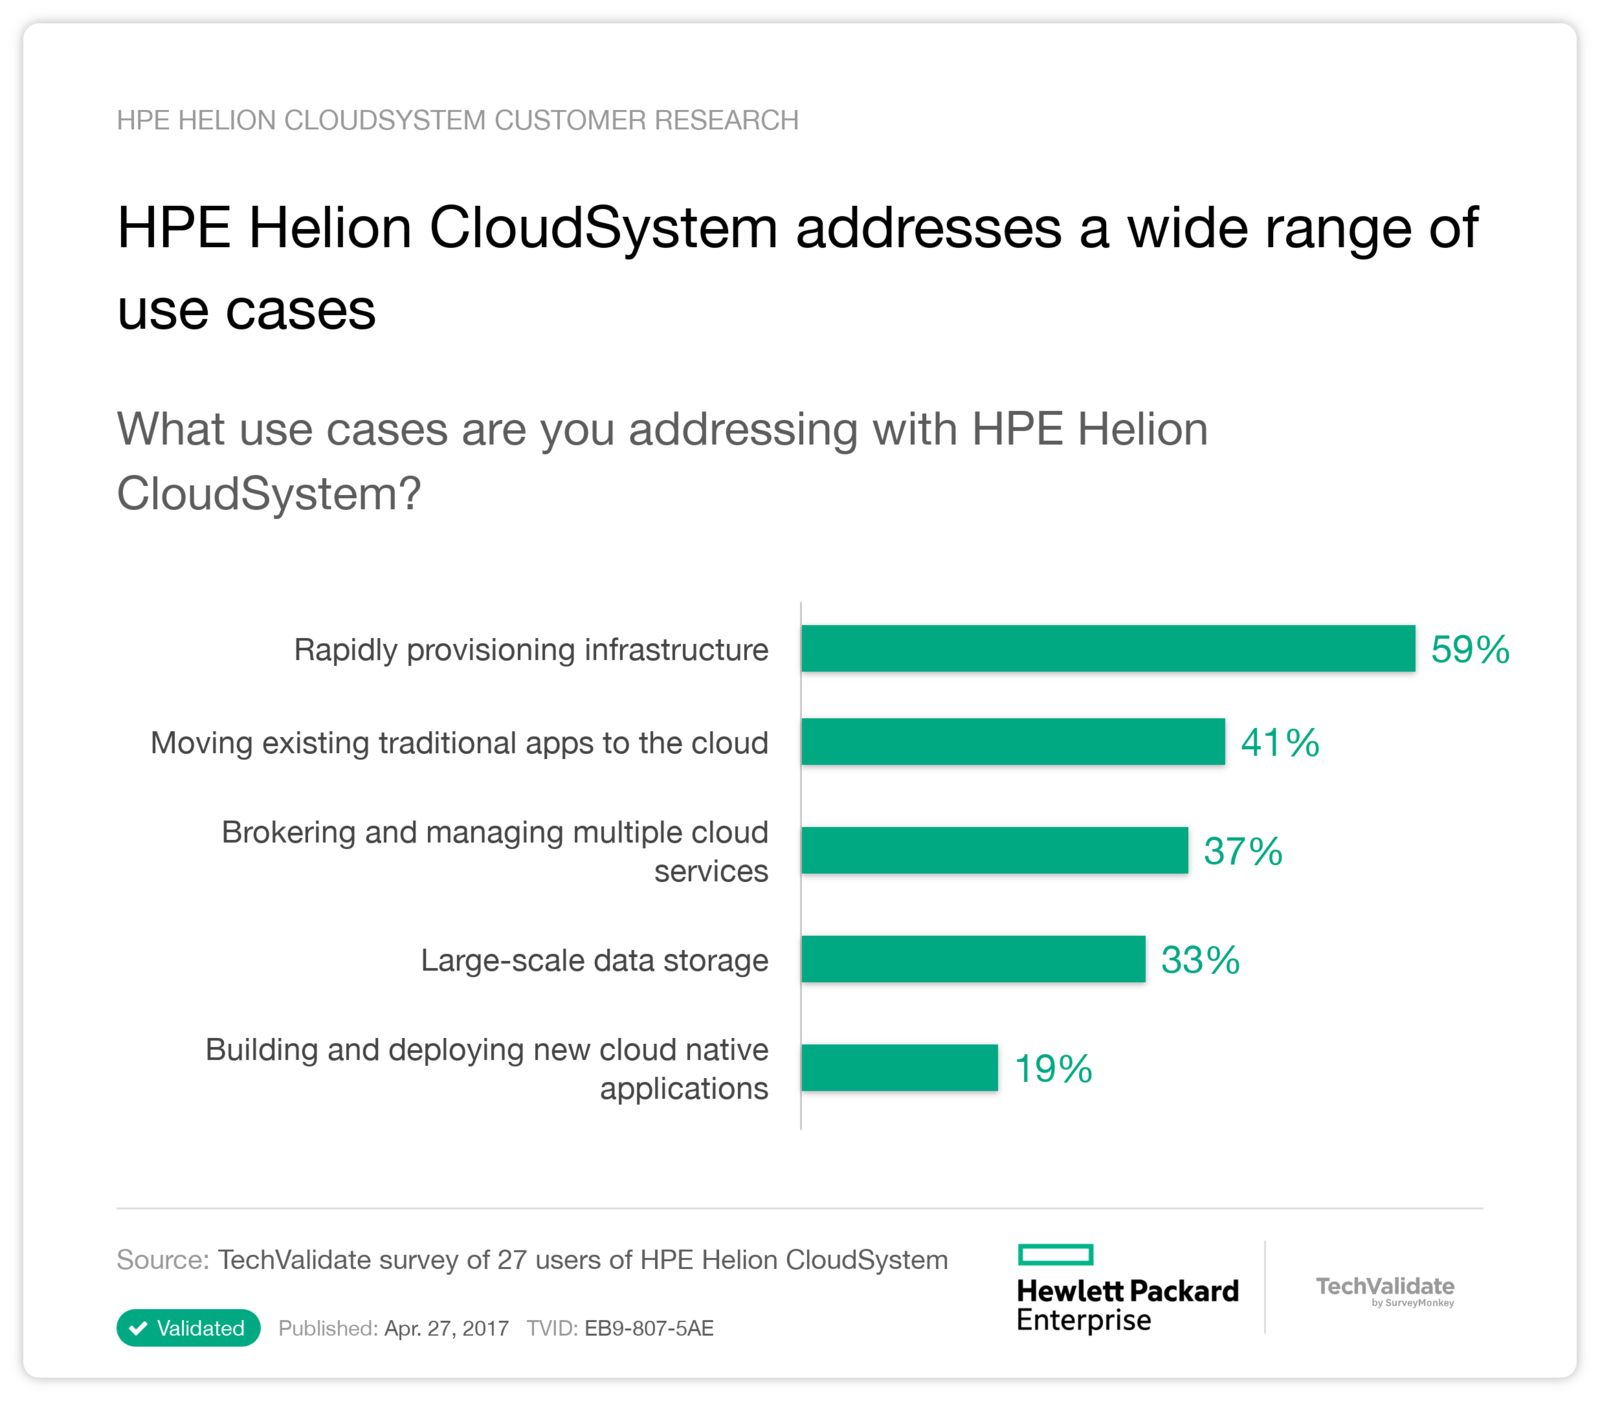 HPE Helion CloudSystem addresses a wide range of use cases